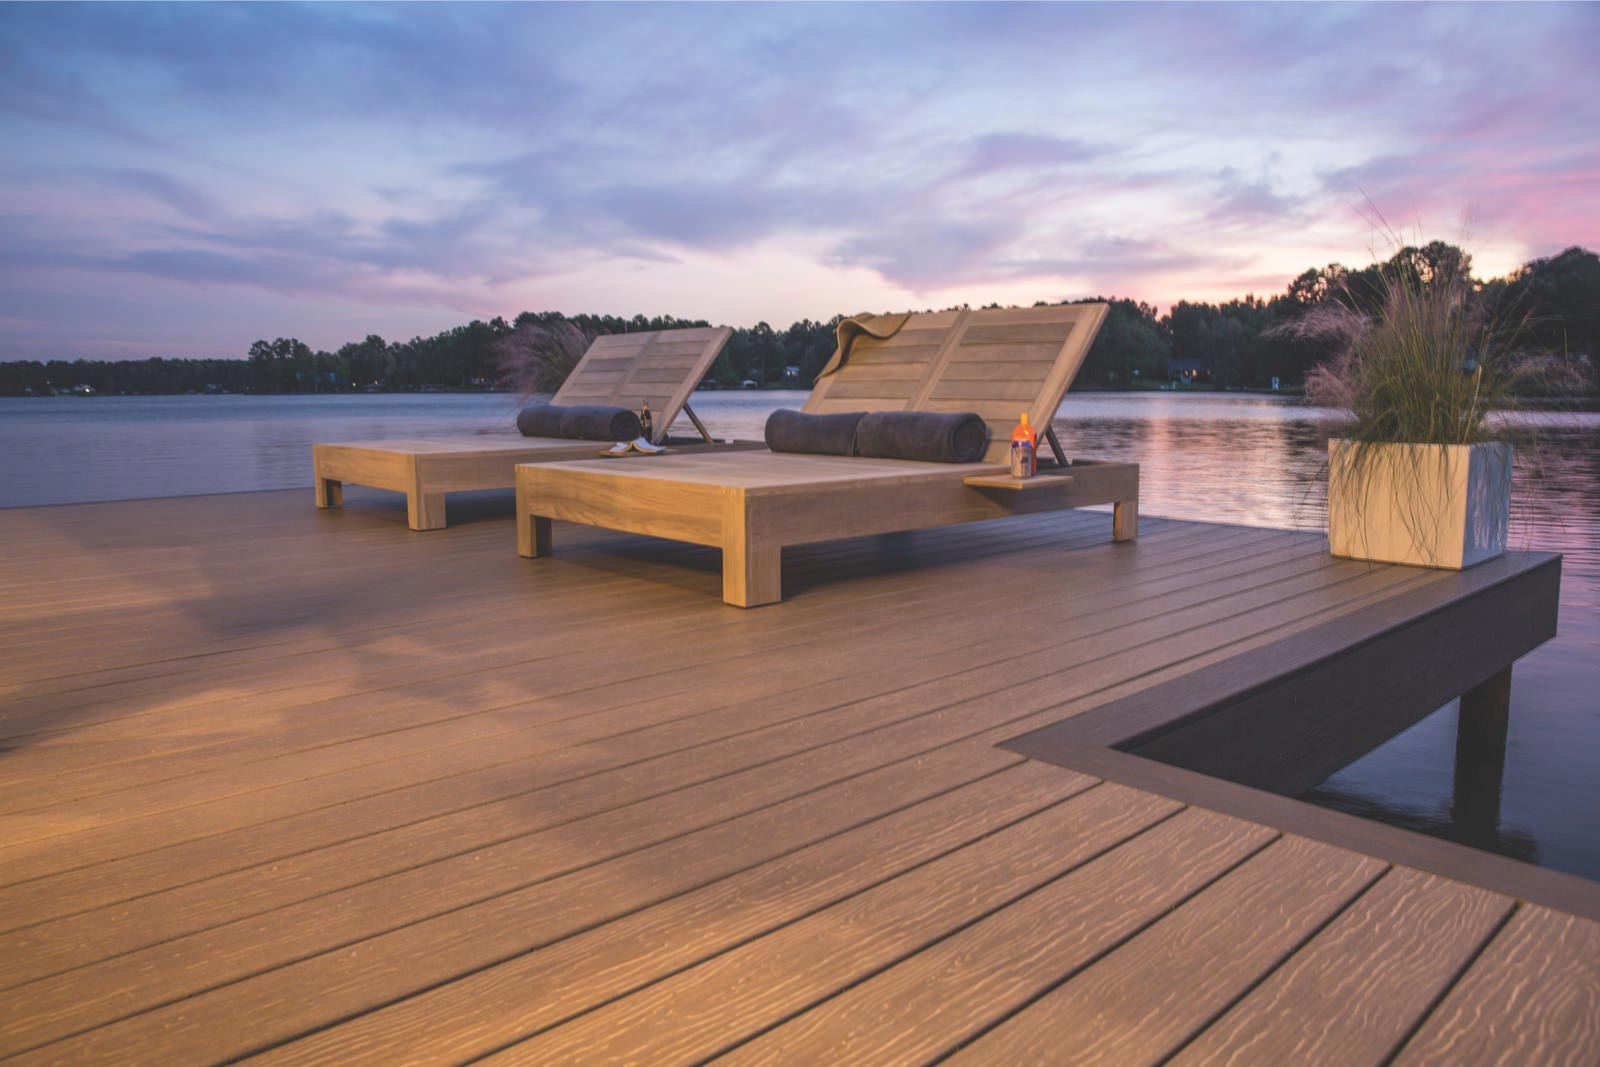 Dock with chairs at dusk